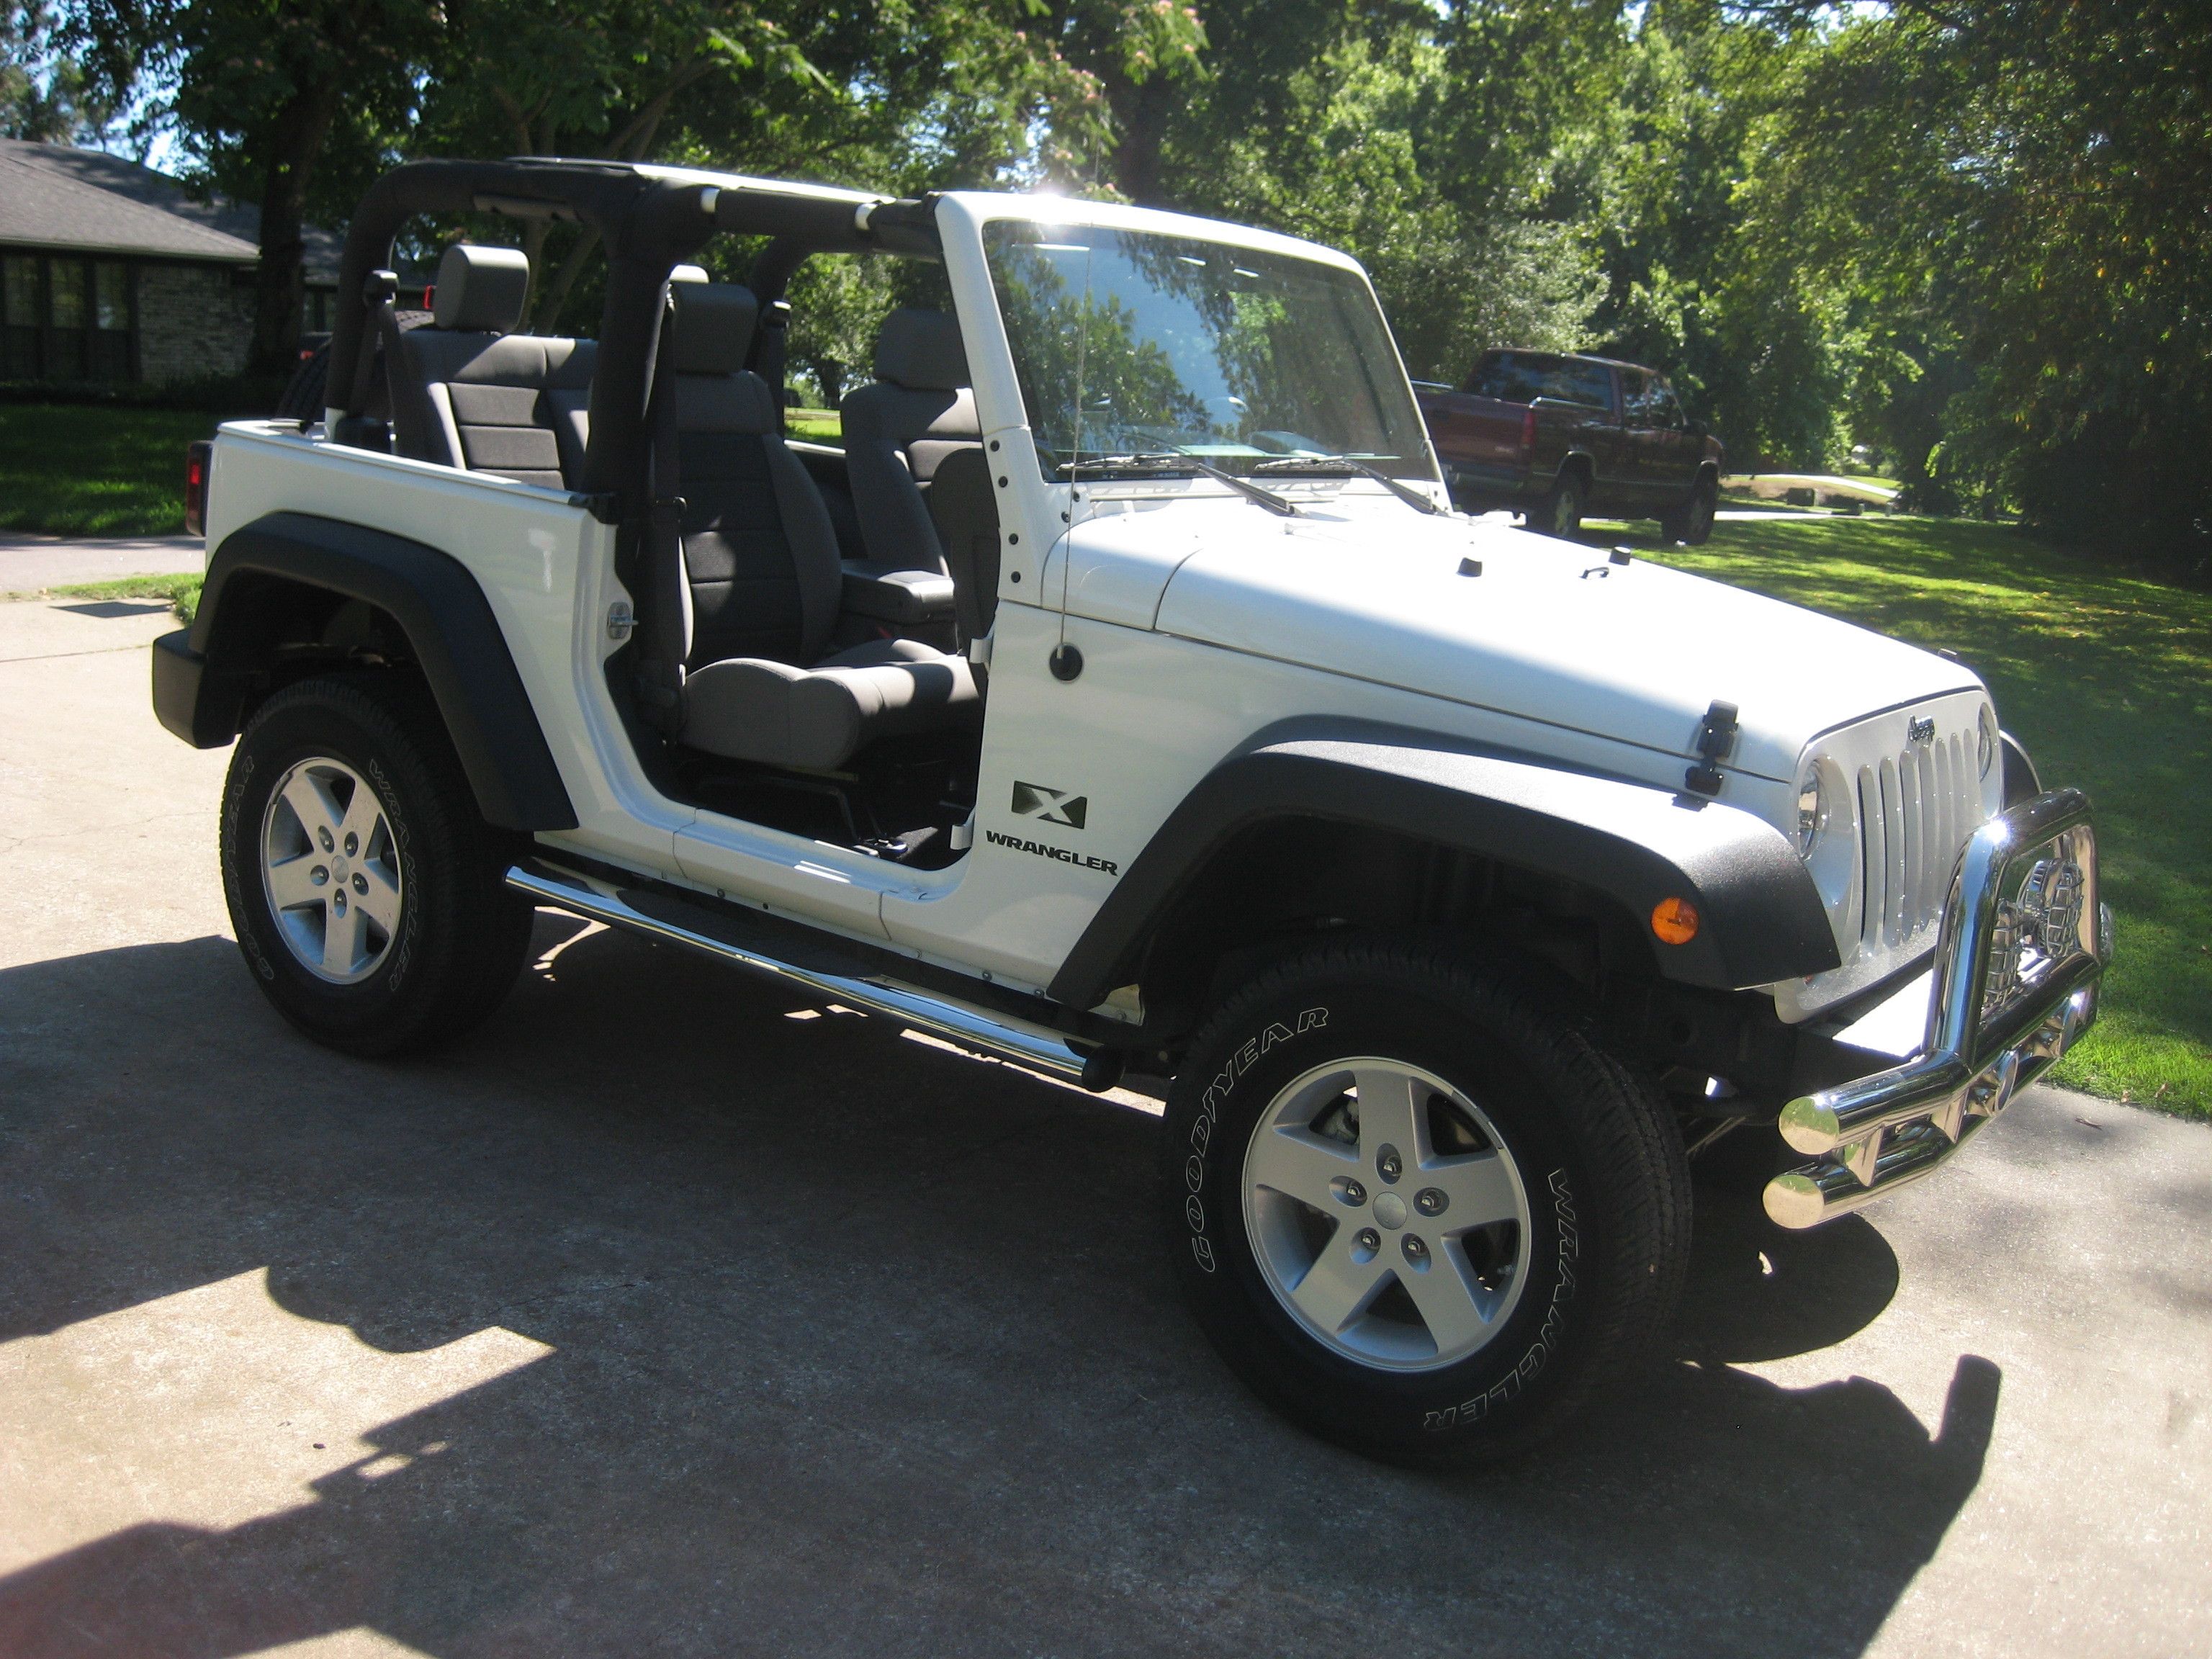 Tyketch 2008 Jeep Wrangler Specs, Photos, Modification